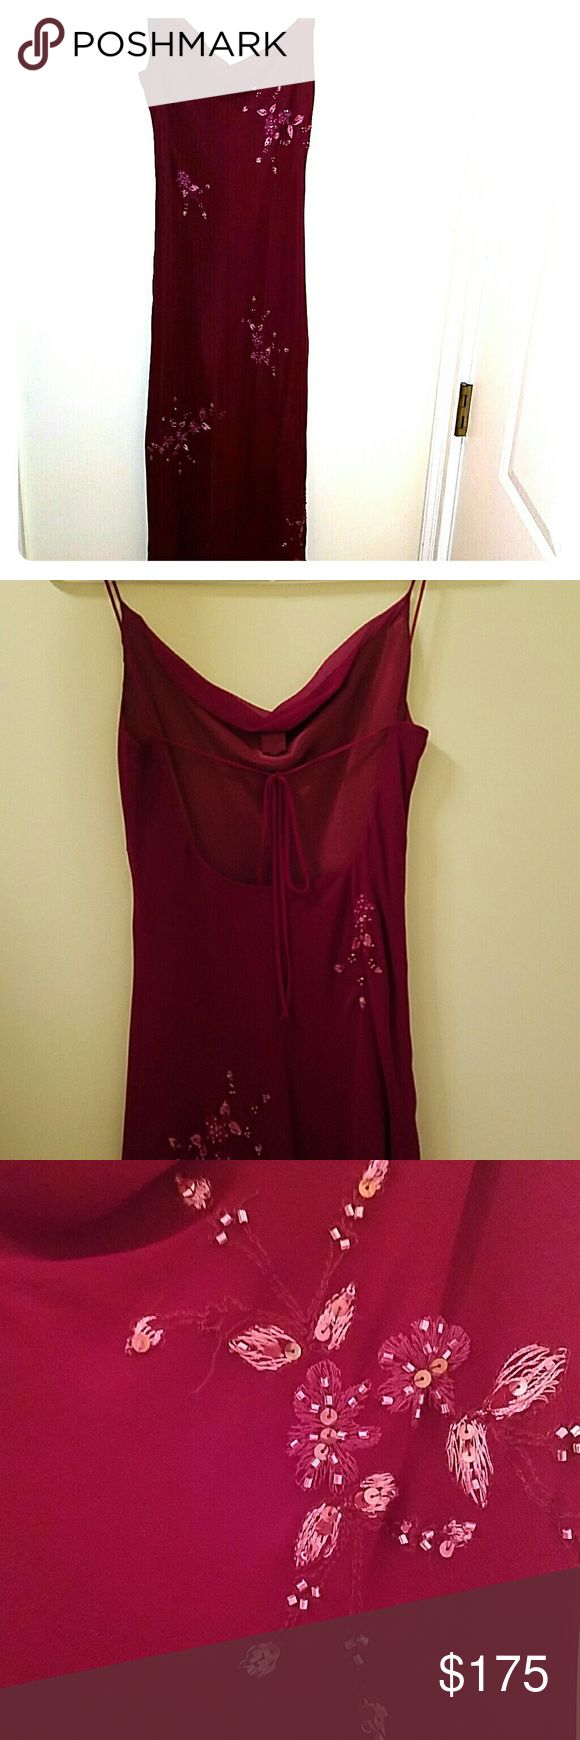 Laundry maroon silk dress with beautiful detail NEW LOW PRICE!!!! Lined with polyester. Perfect for wedding guest. Worn once. Laundry by Shelli Segal Dresses High Low